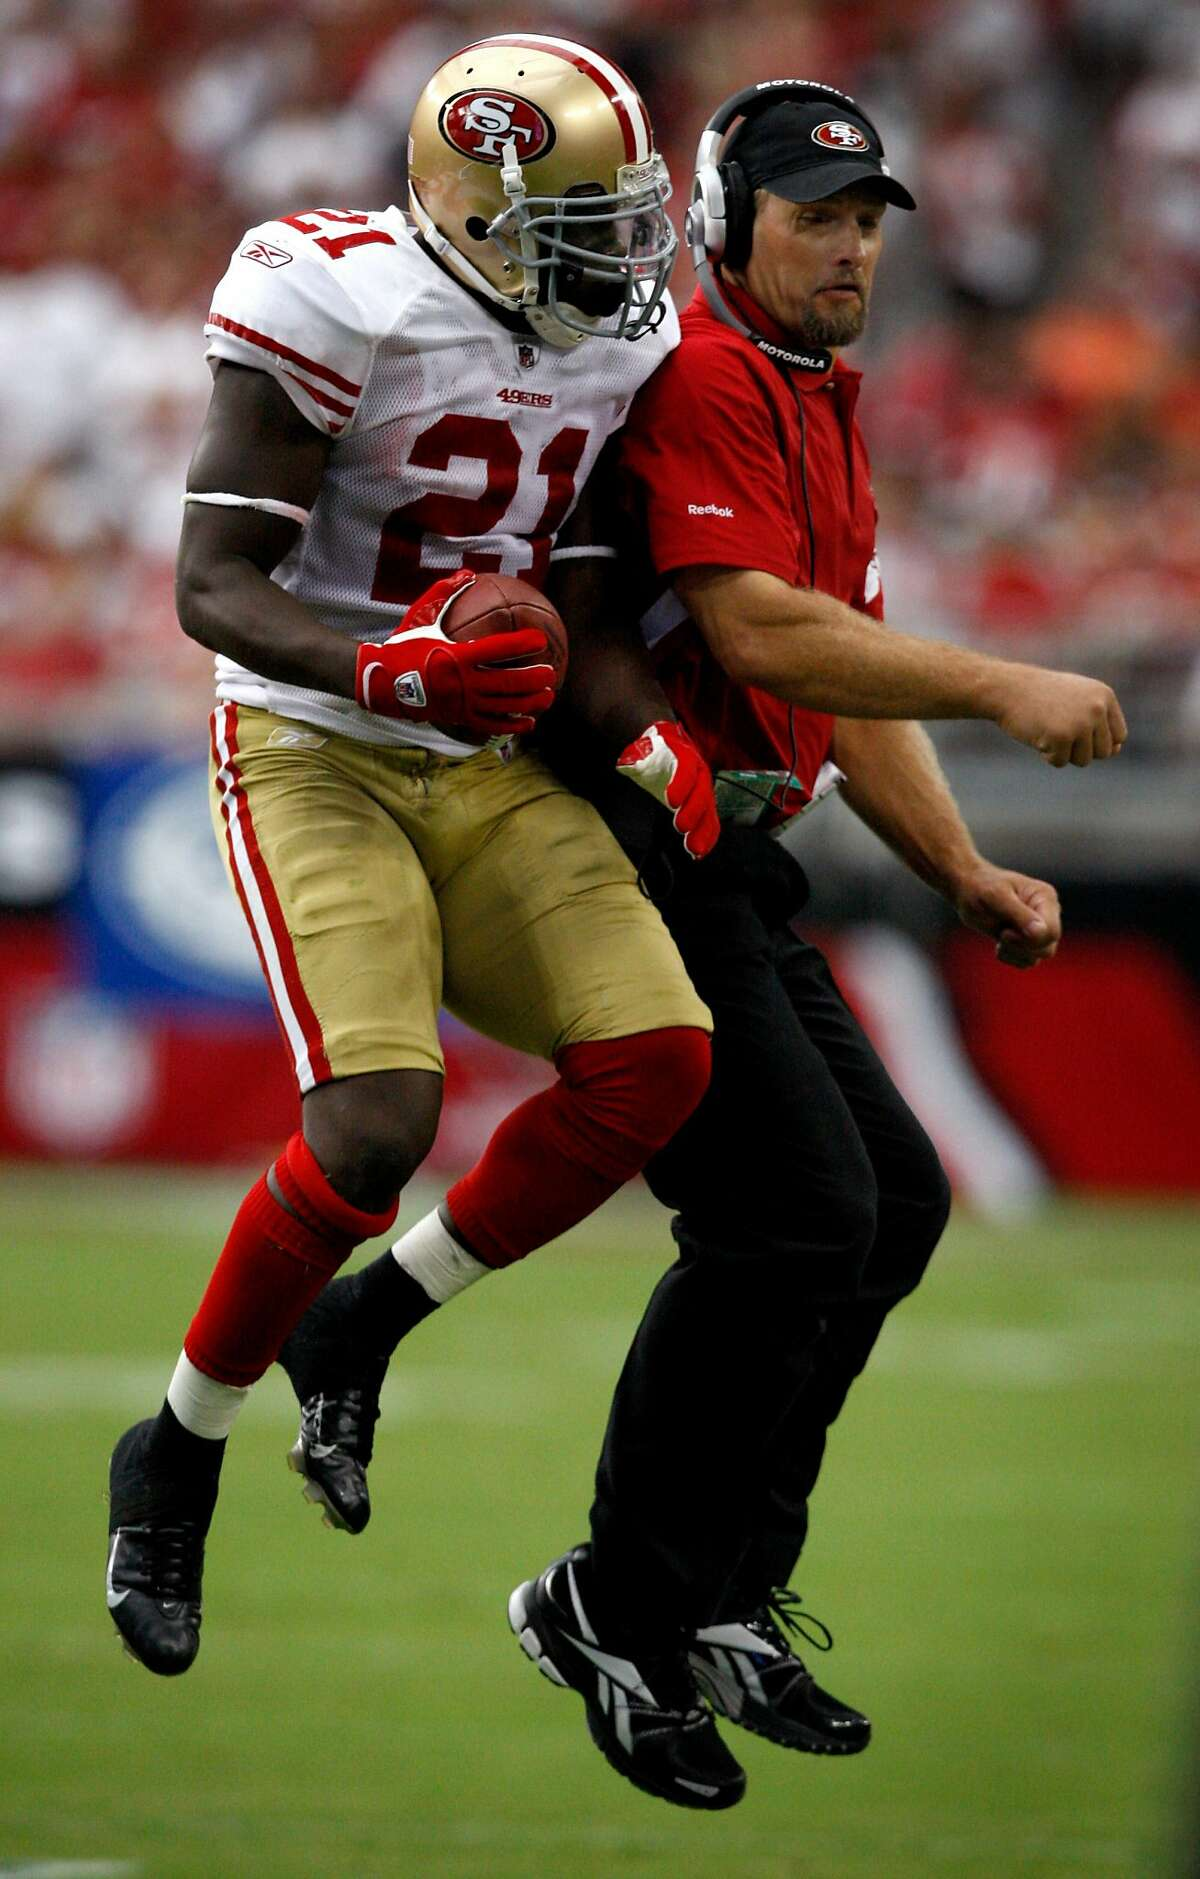 Frank Gore bumps with running backs coach Tom Rathman while they celebrate Gore's touchdown in the second quarter of the San Francisco 49ers vs. Arizona Cardinals NFL game in Glendale, Ariz., on Sunday, Sept. 13, 2009.